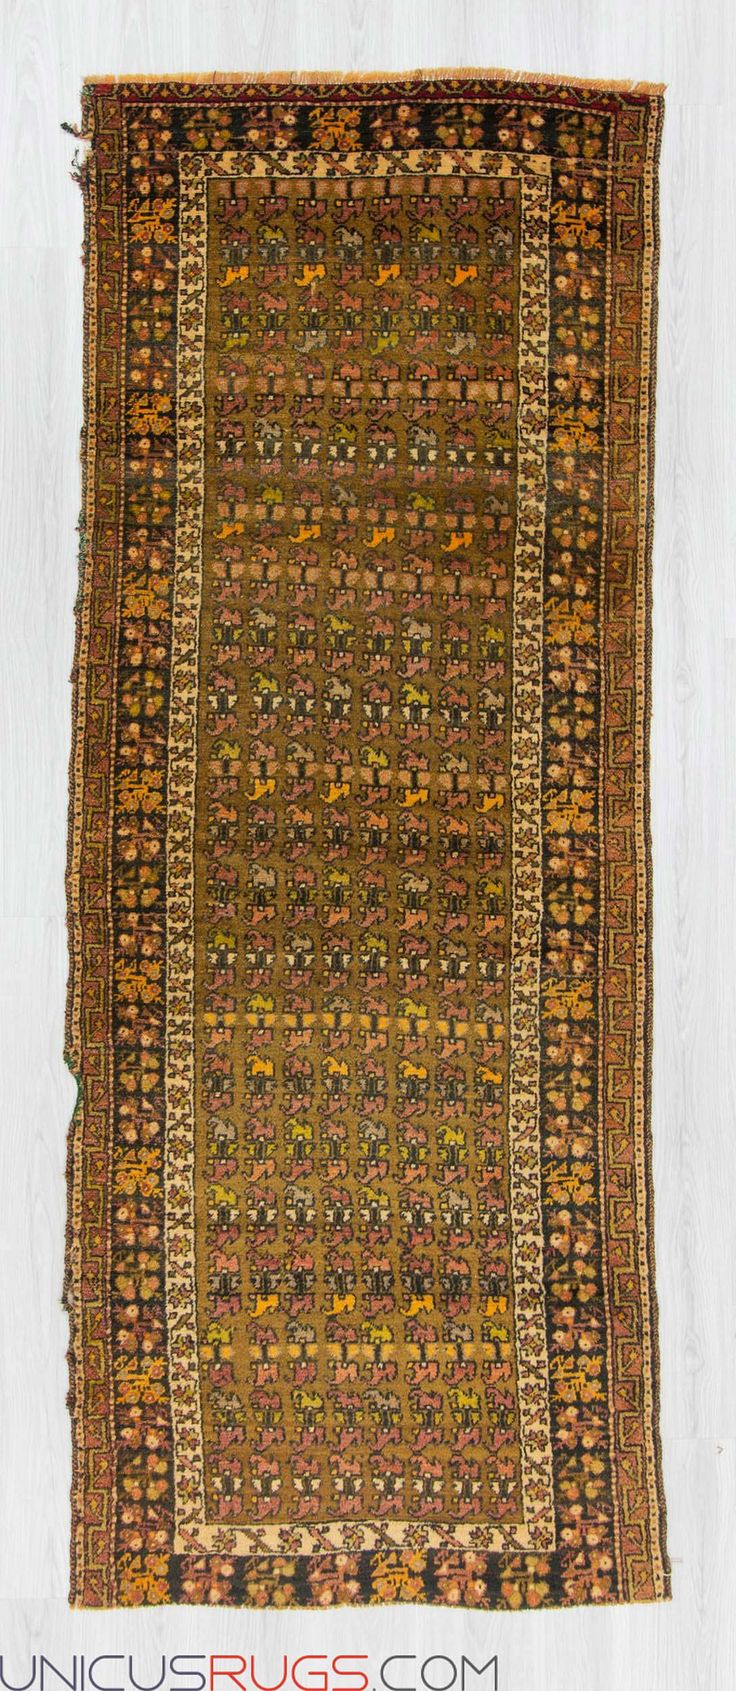 "Vintage runner rug from Malatya region of Turkey. In very good condition. Approximately 60-70 years old Width: 3' 5"" - Length: 8' 11"" RUNNERS"